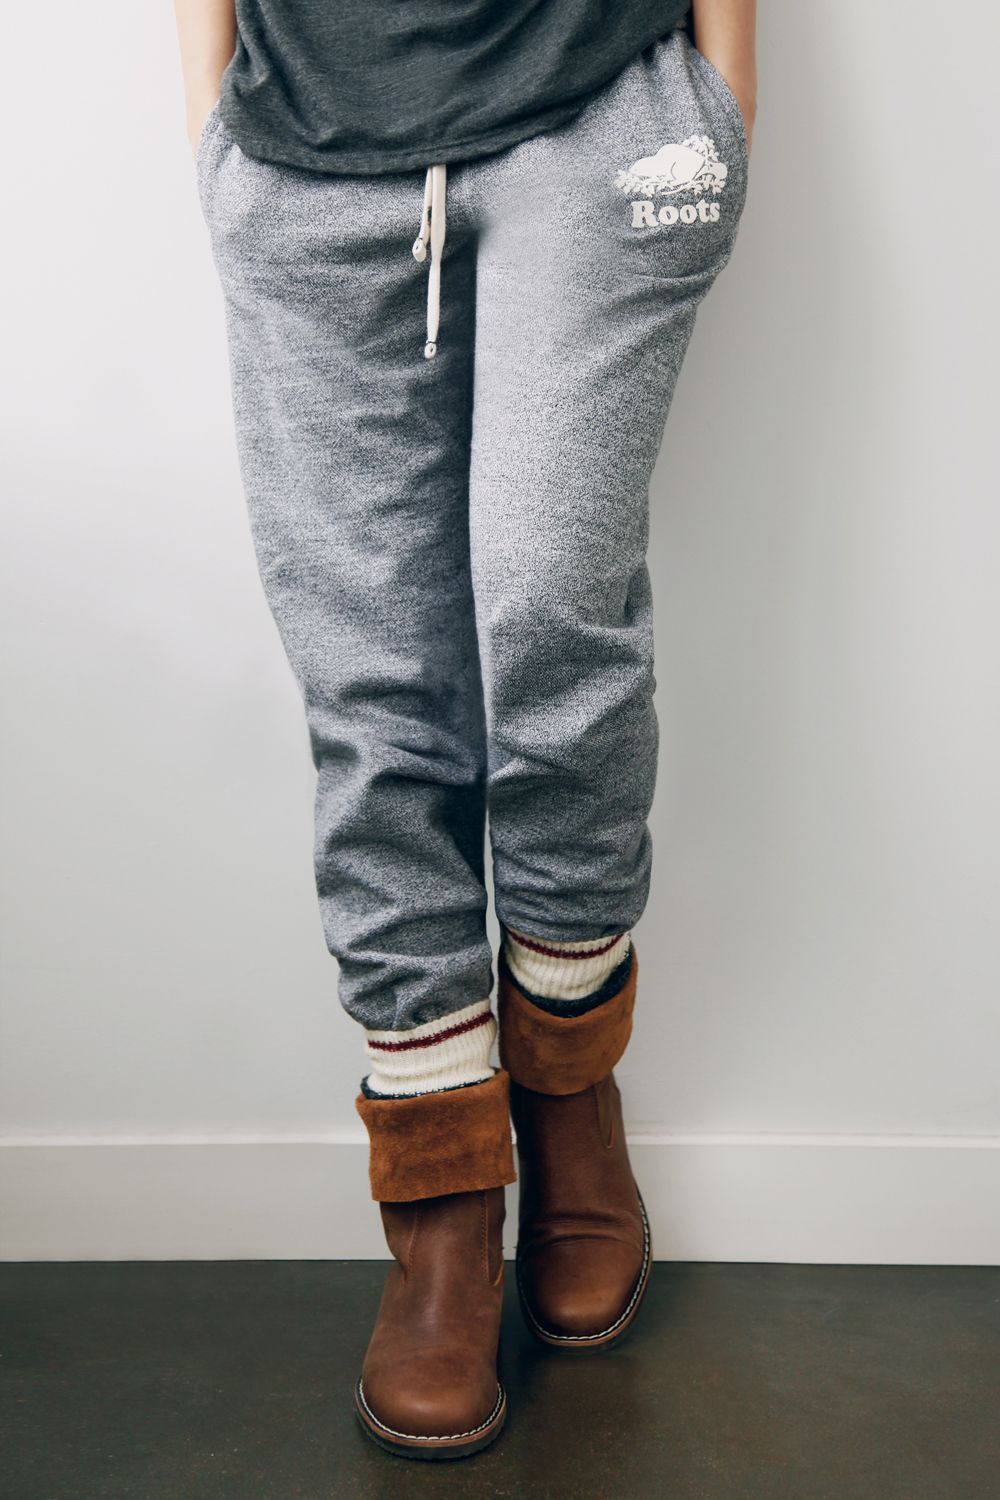 salt and pepper sweatpants cabin socks and tribe rollover boots pretty much my go to look teens. Black Bedroom Furniture Sets. Home Design Ideas